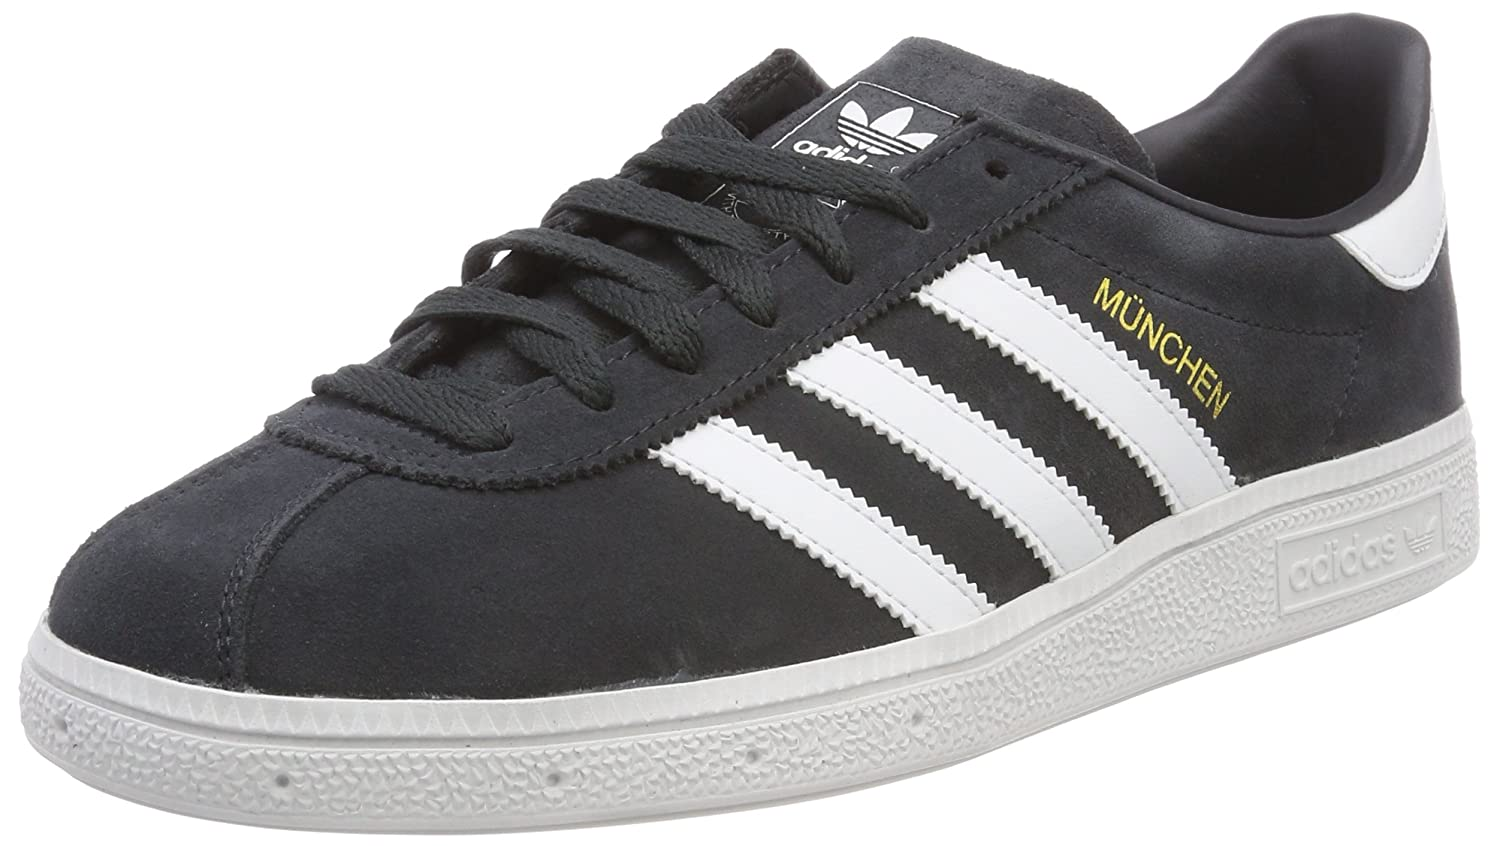 Adidas Originals Munich Men Sneaker Mens Shoes Shoe Trainers